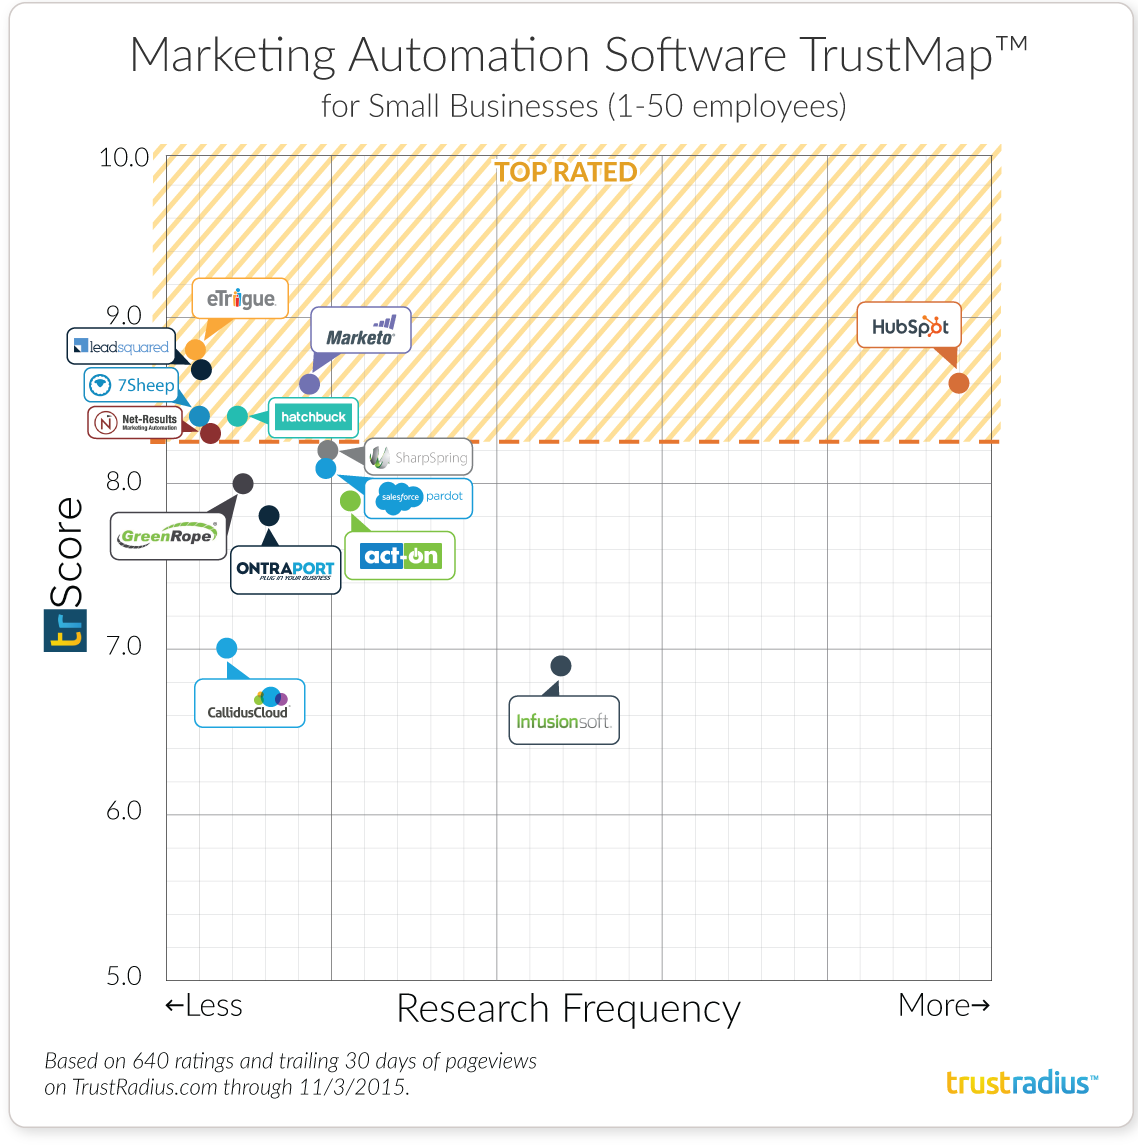 Small Businesses Marketing Automation Software TrustMap